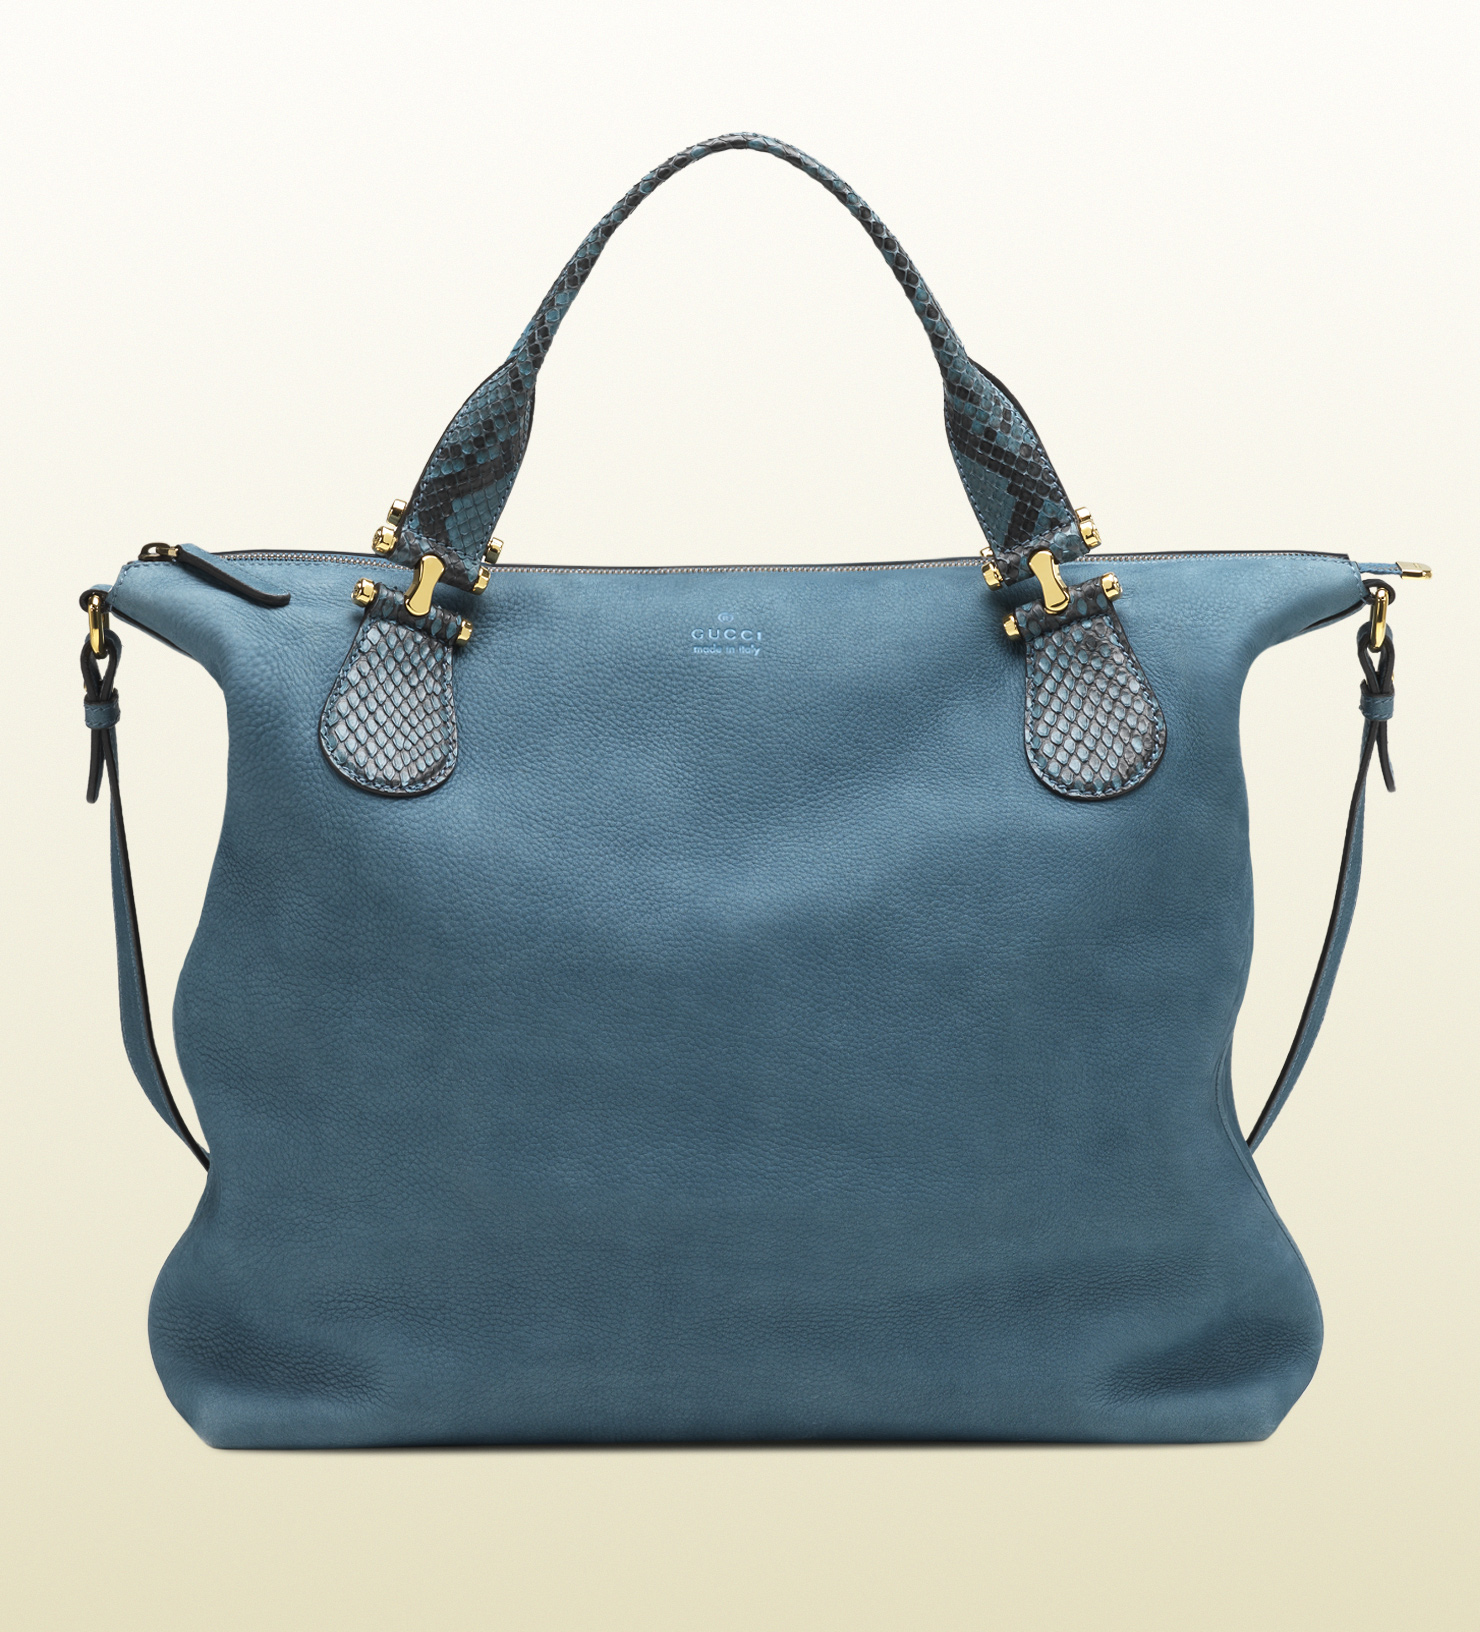 Gucci Twice Suede and Python Shoulder Bag in Blue - Lyst